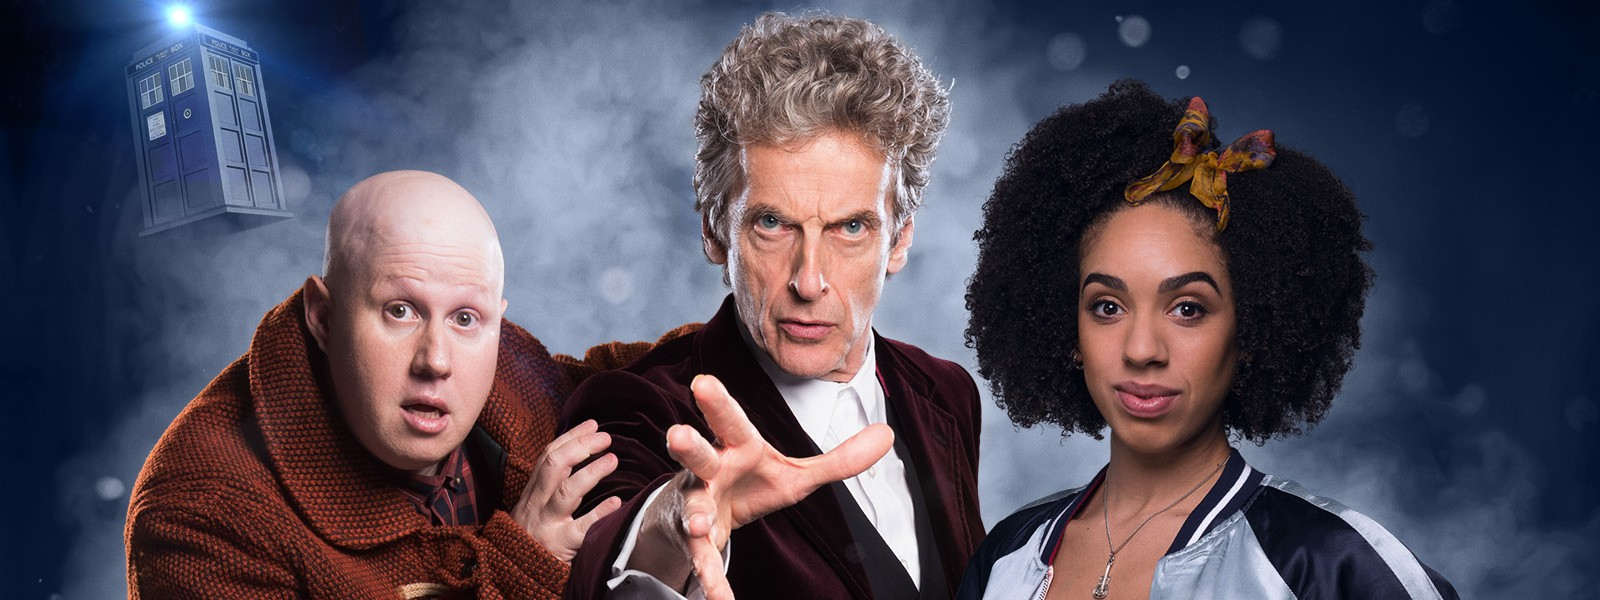 Doctor Who: The Pilot Live events